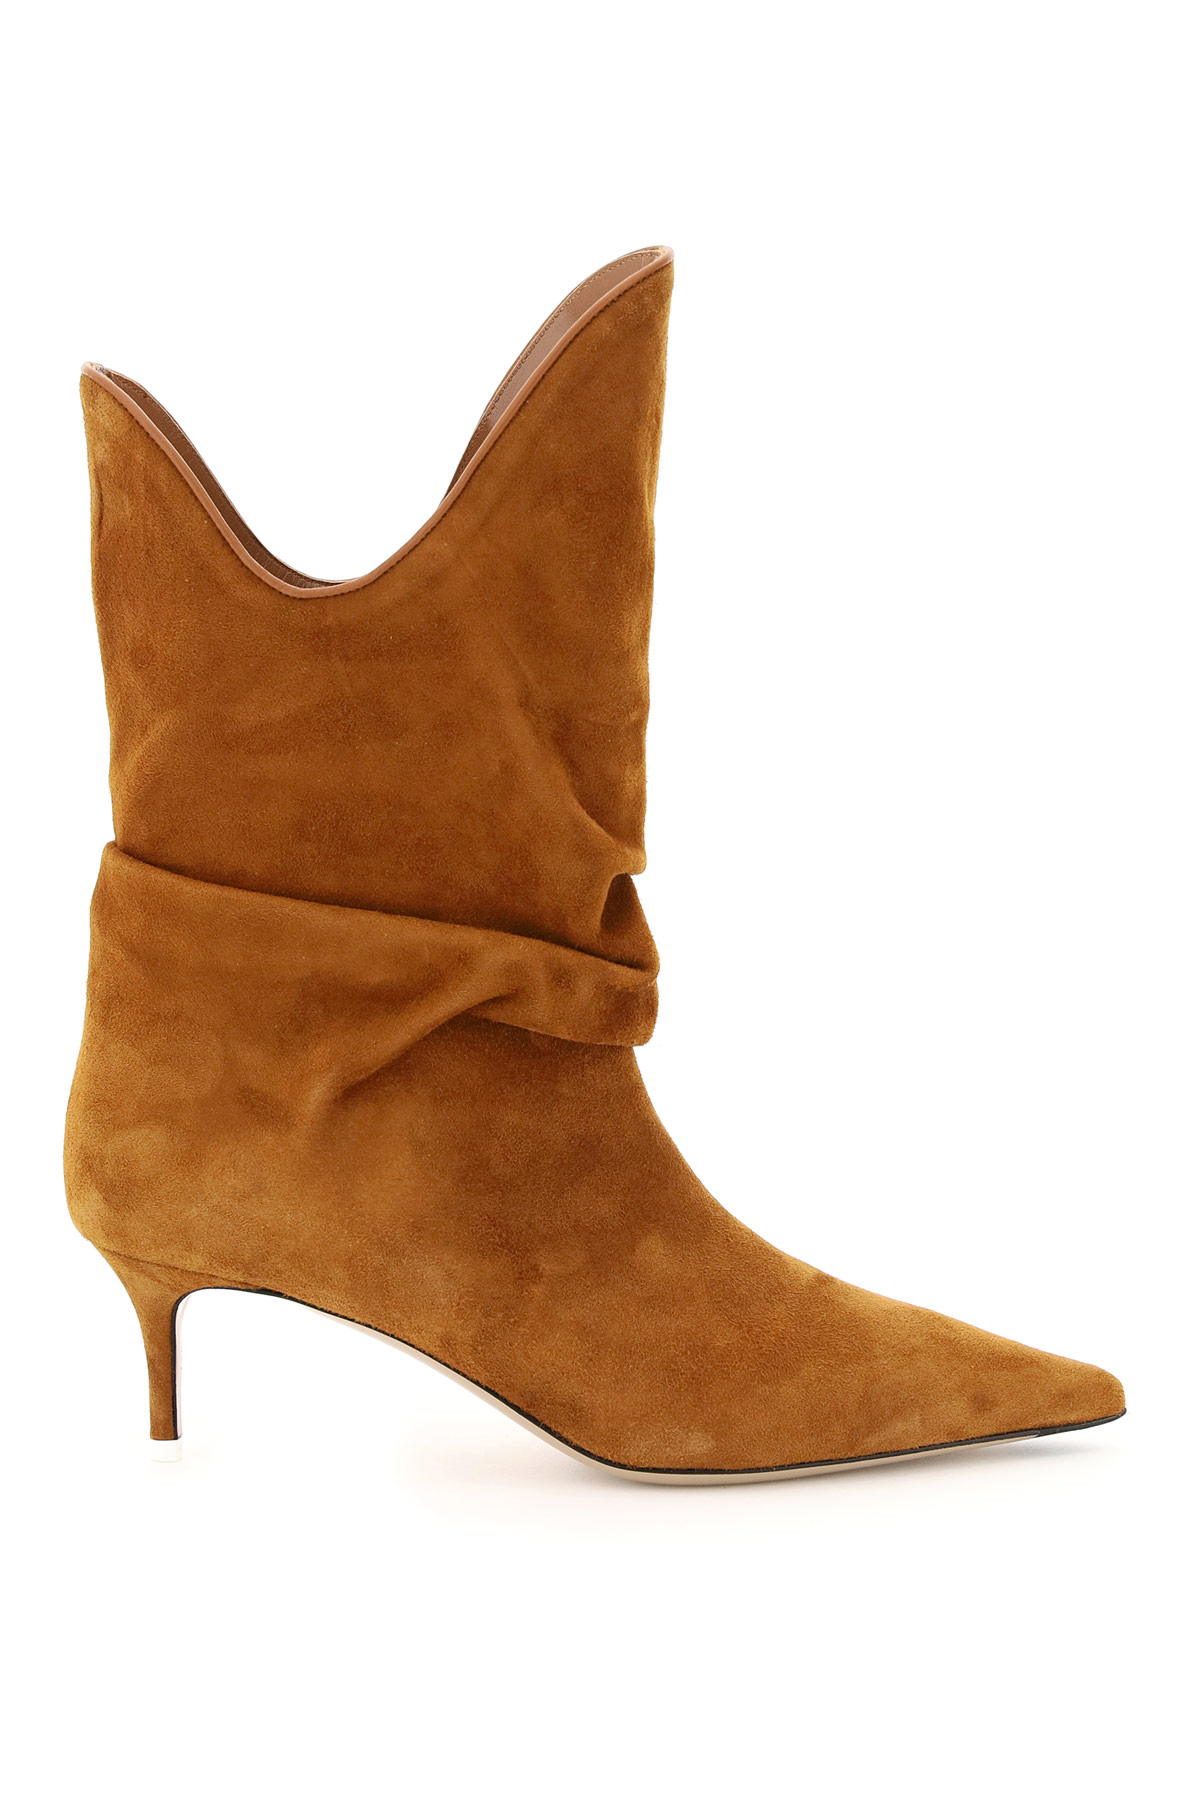 The Attico Suede Ankle Boots 38 Brown Leather